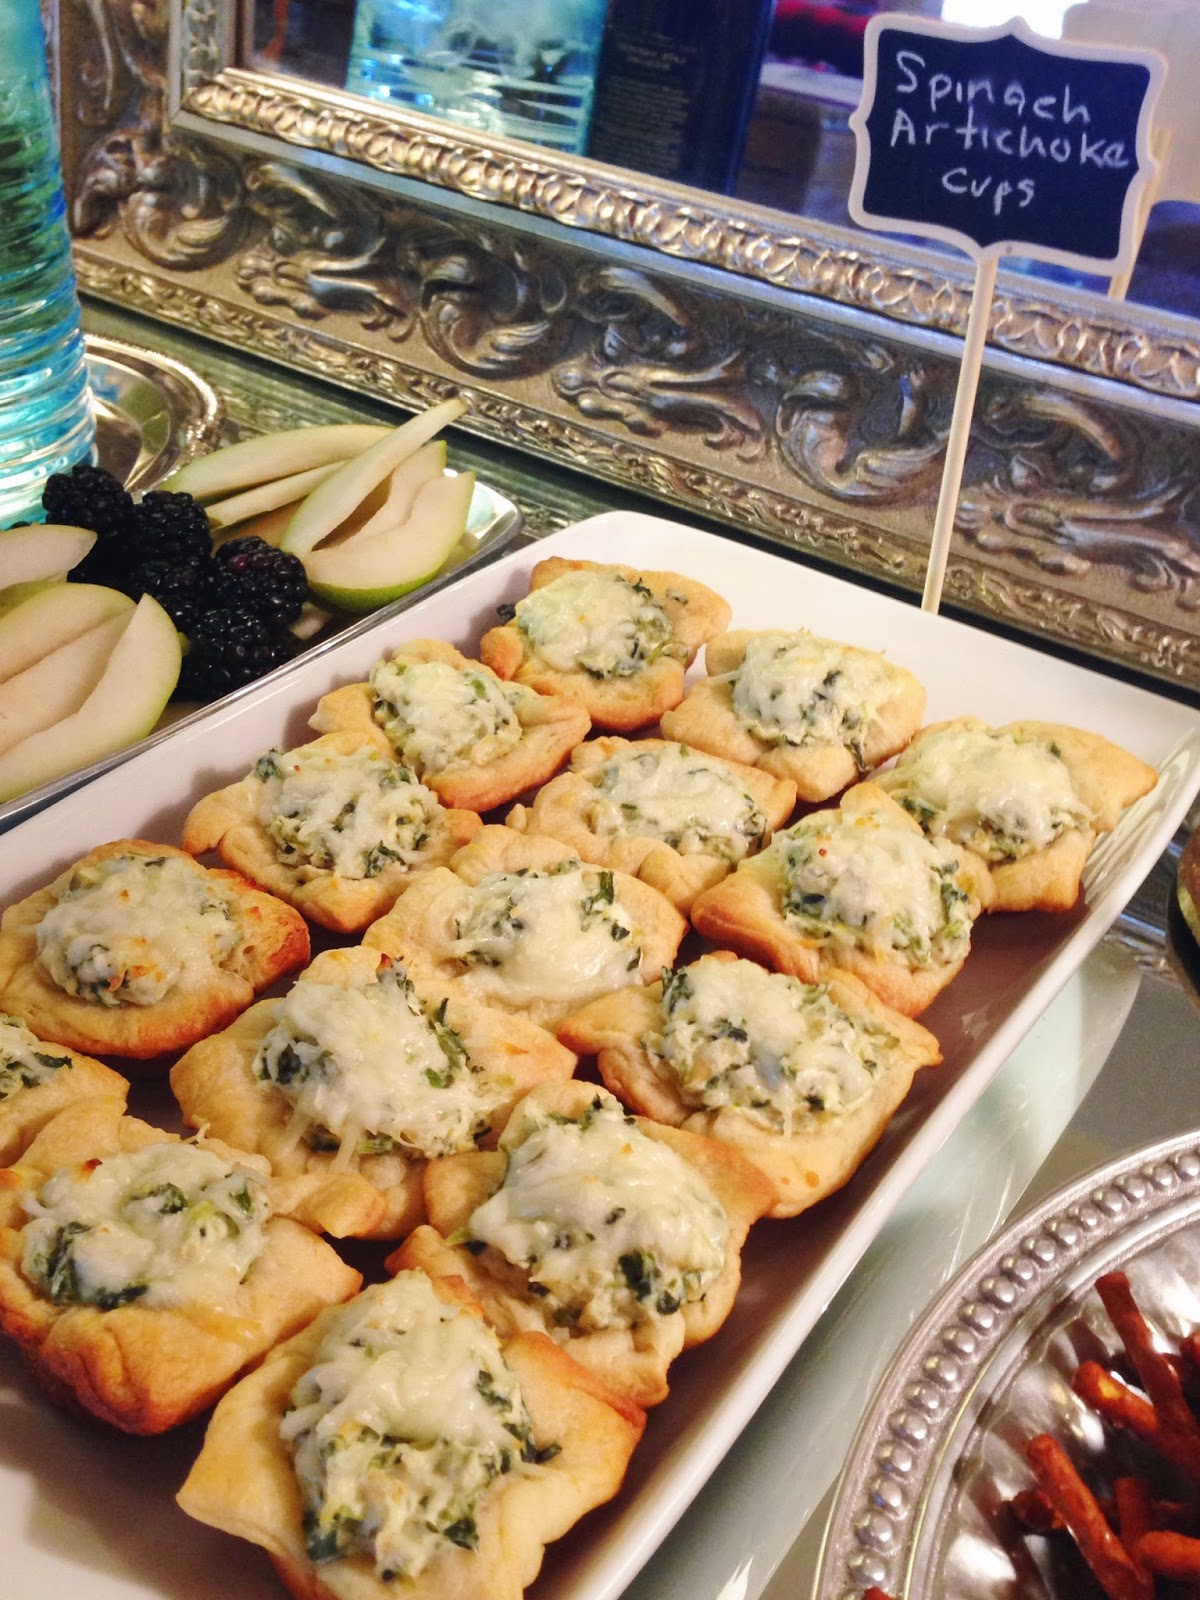 Nellie & Phoeb's: In the Kitchen- Spinach Artichoke Cups